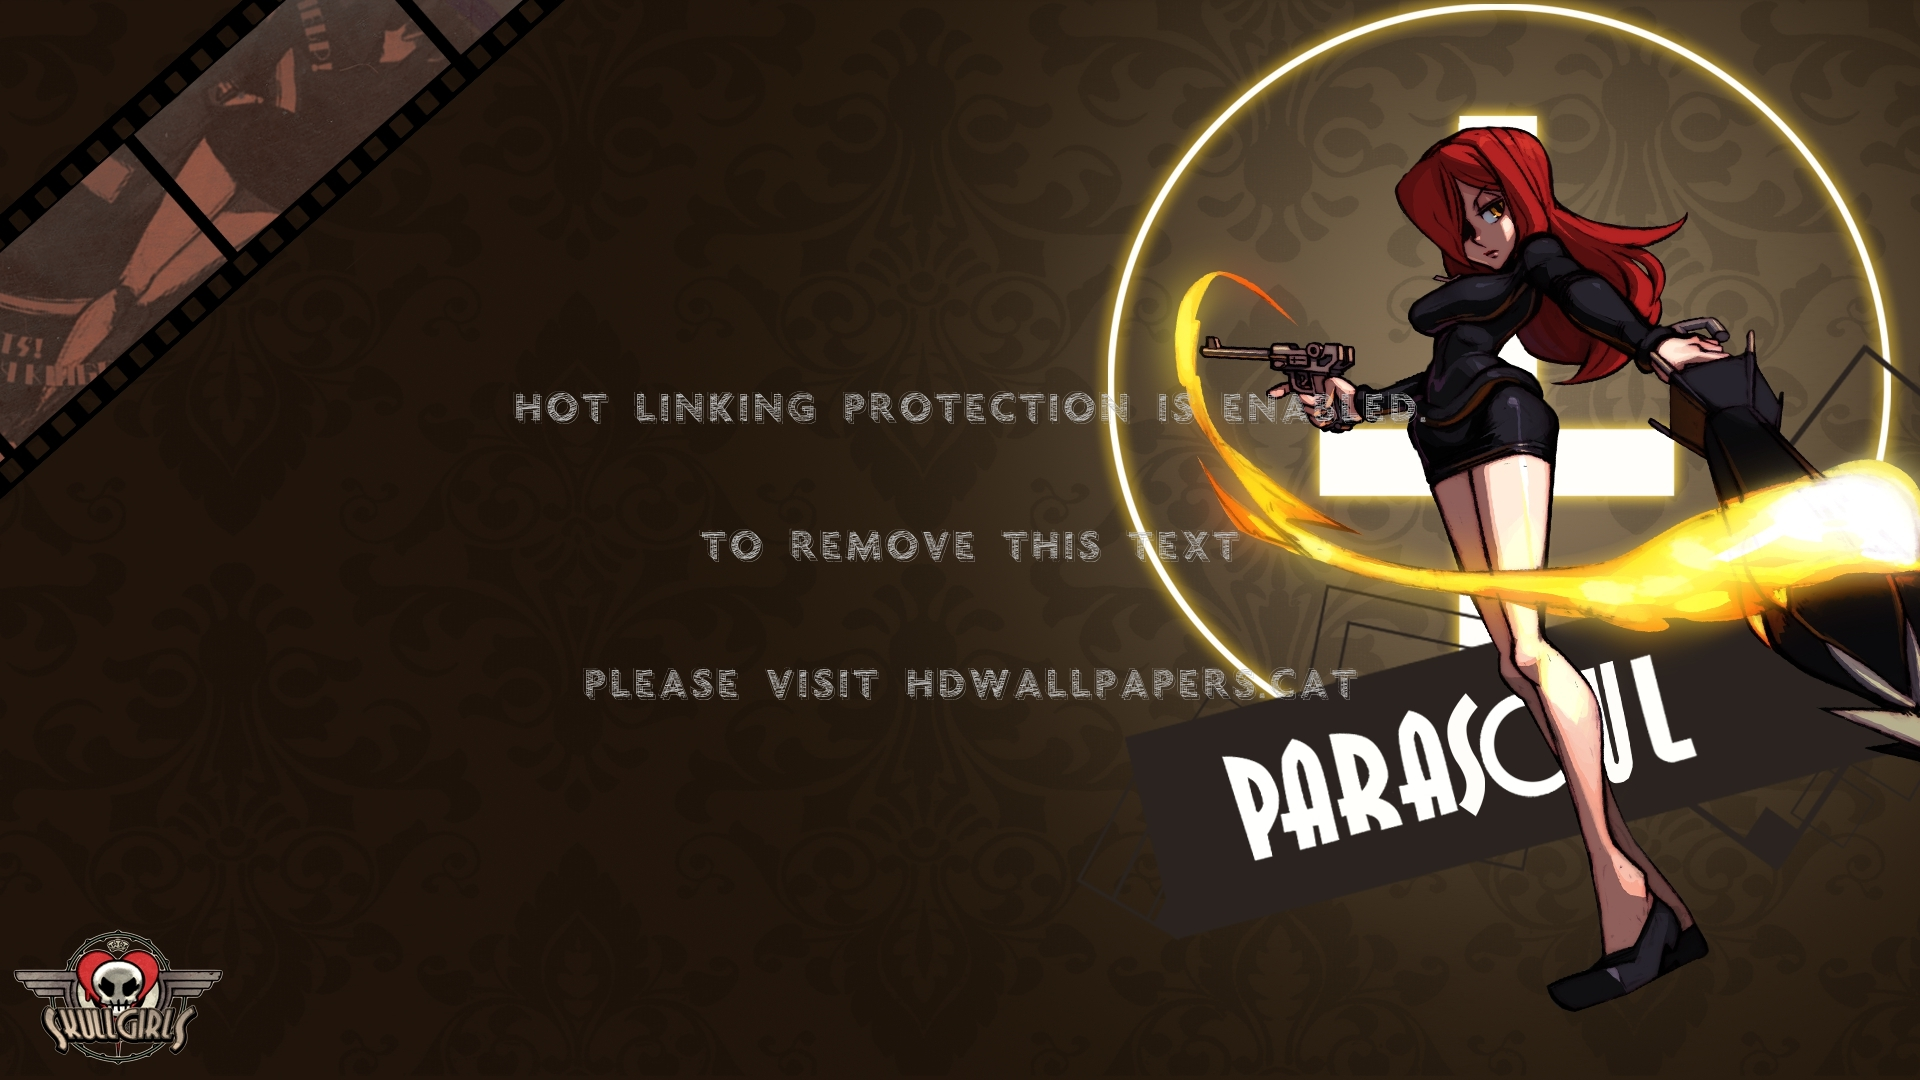 Parasoul clipart graphic black and white download Skullgirls Parasoul (#1497568) - HD Wallpaper Download graphic black and white download